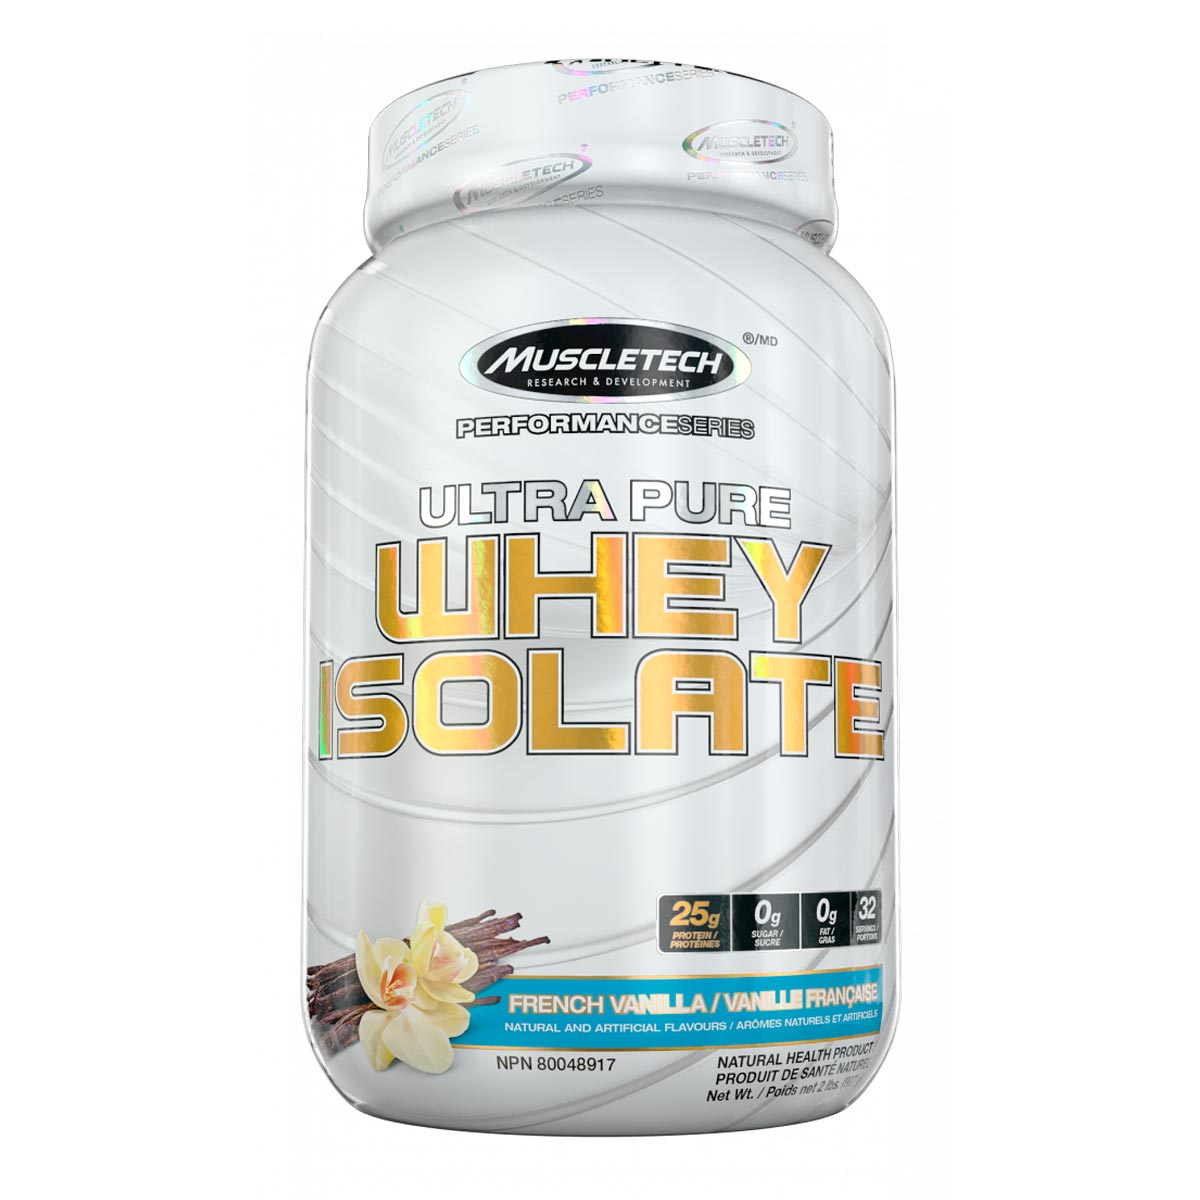 Ultra Pure Whey Isolate Muscletech 907g